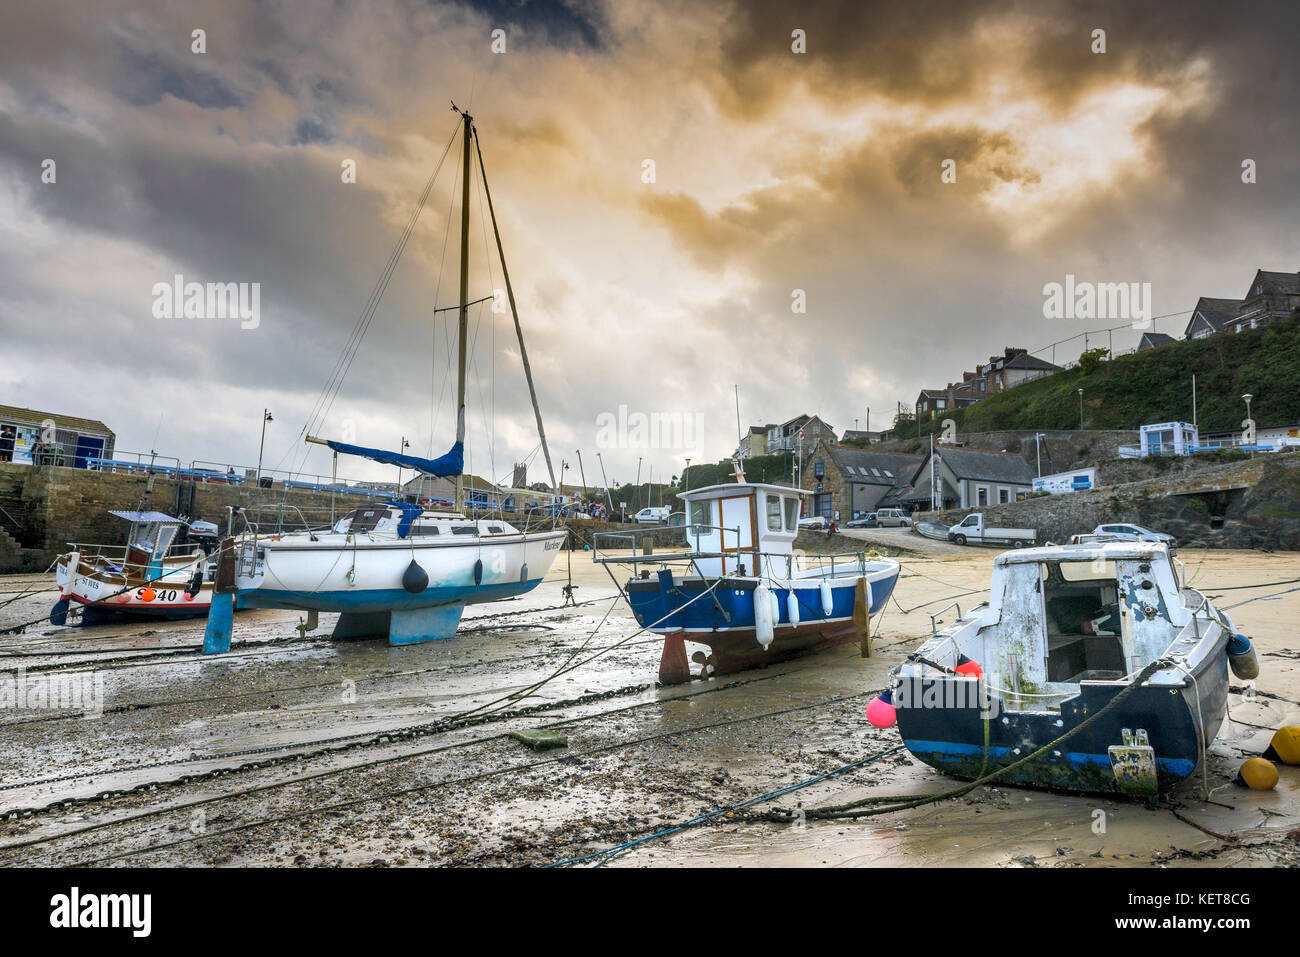 Newquay Harbour Cornwall - evening light over boats tied up at low tide in Newquay harbour. - Stock Image